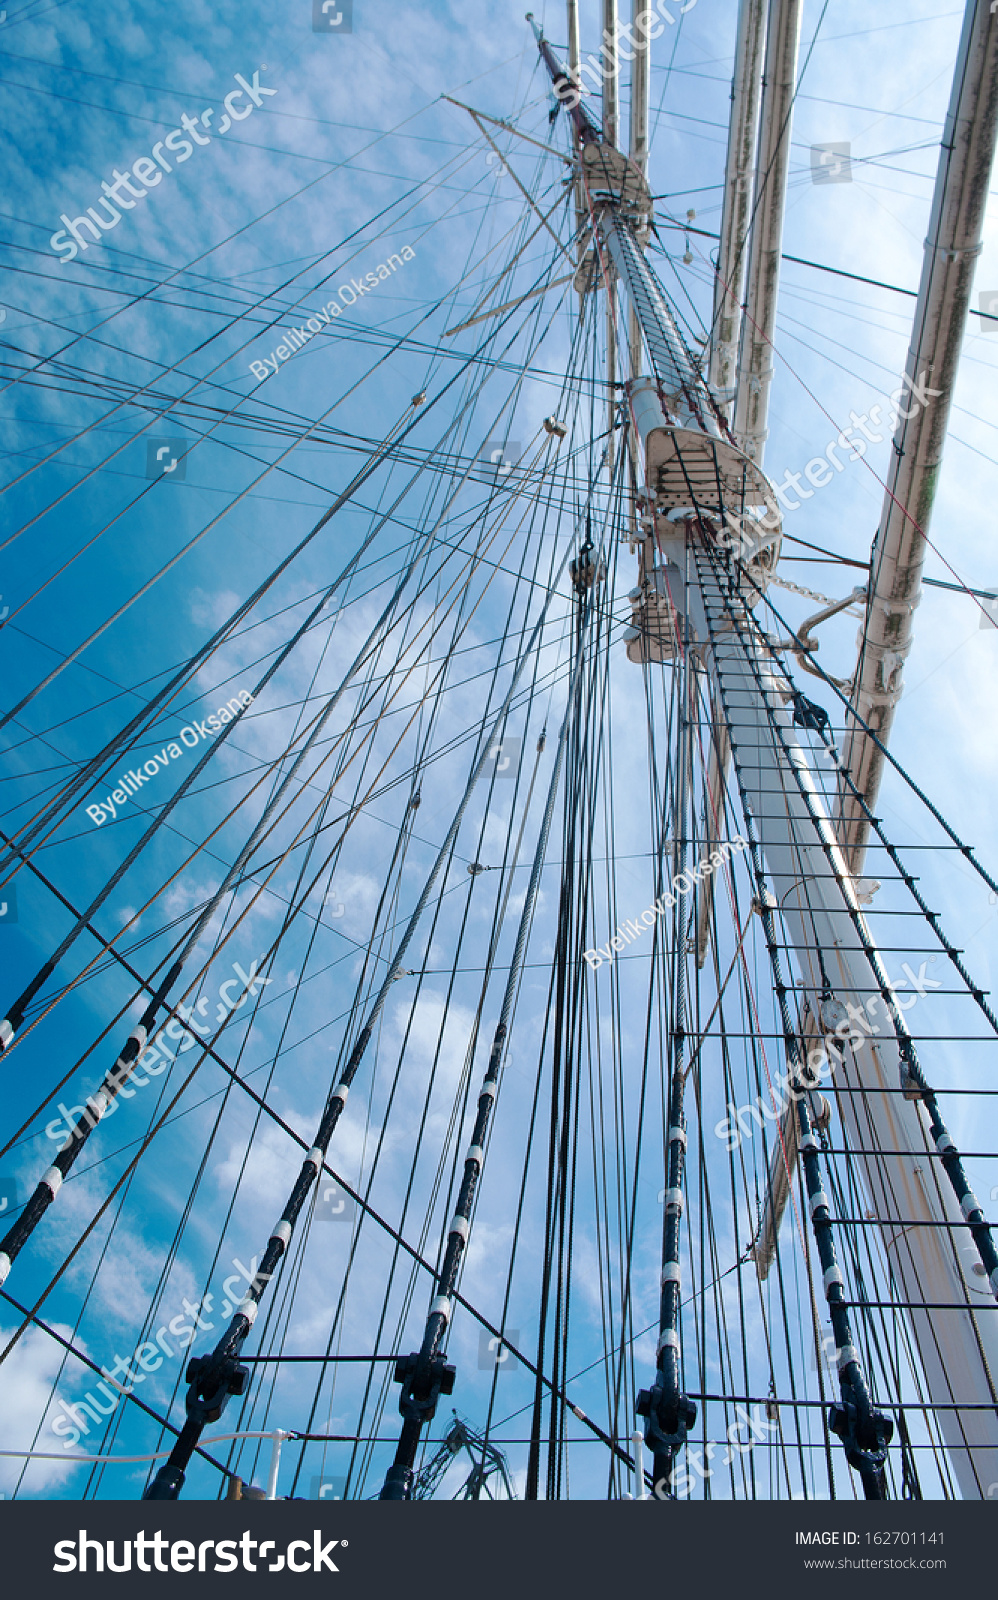 Rope Ladder Main Mast Ship On Stock Photo 162701141 - Shutterstock for Rope Ladder Ship  242xkb